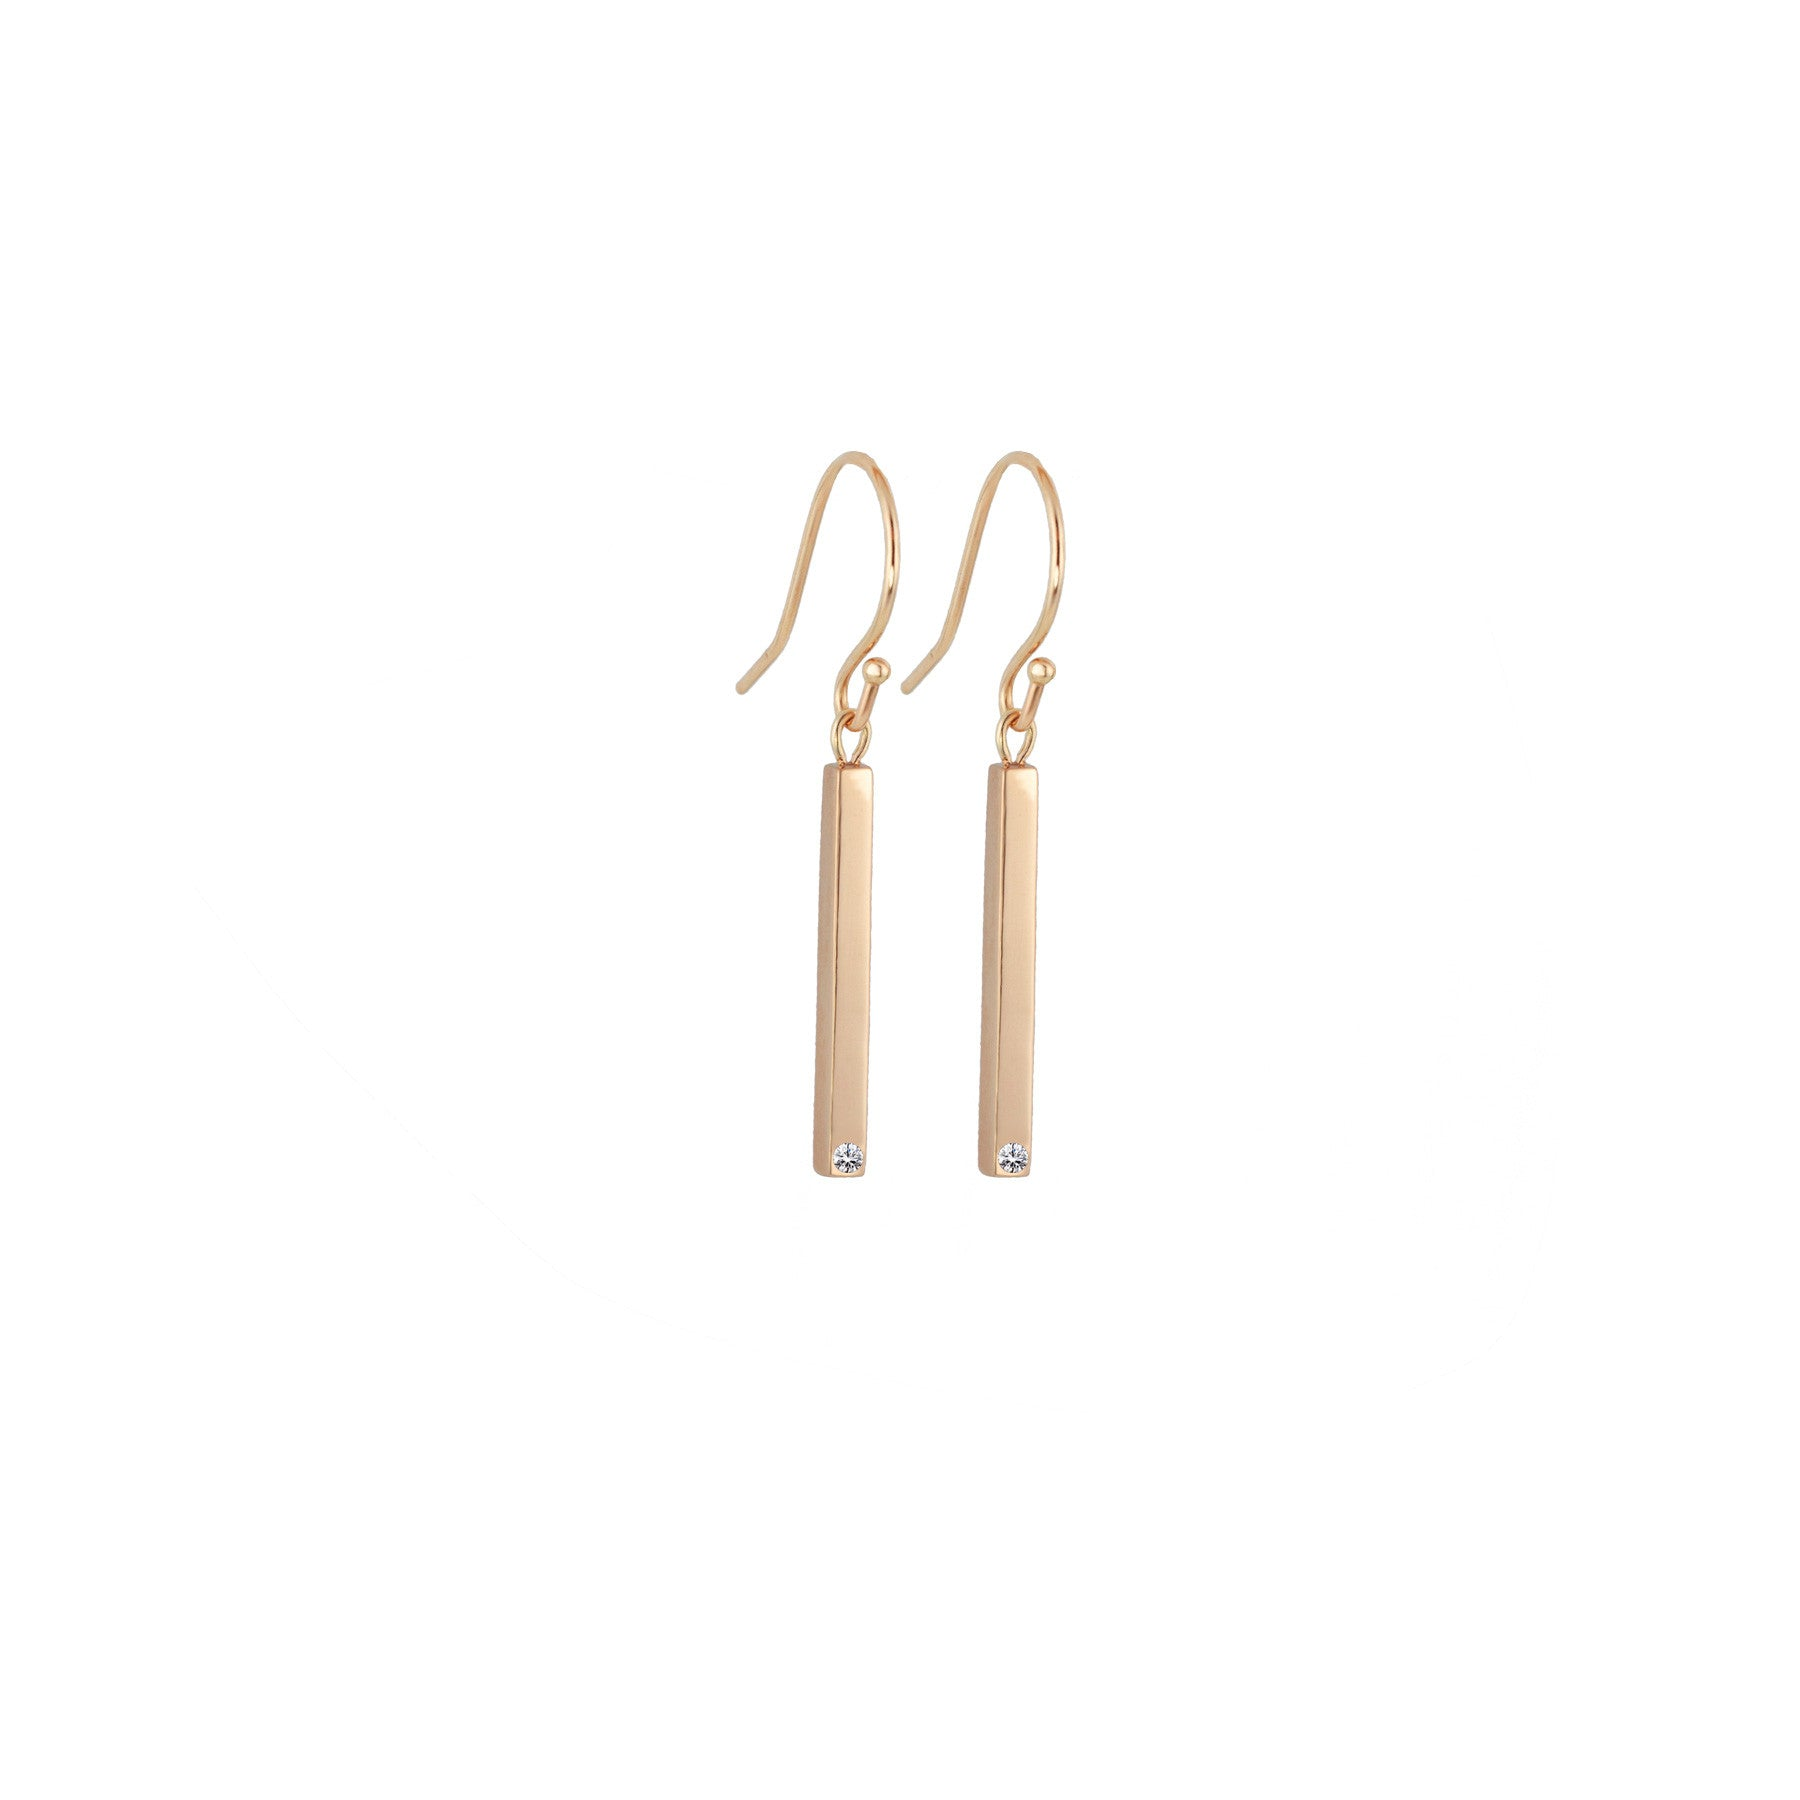 BAR EARRINGS WITH DIAMONDS